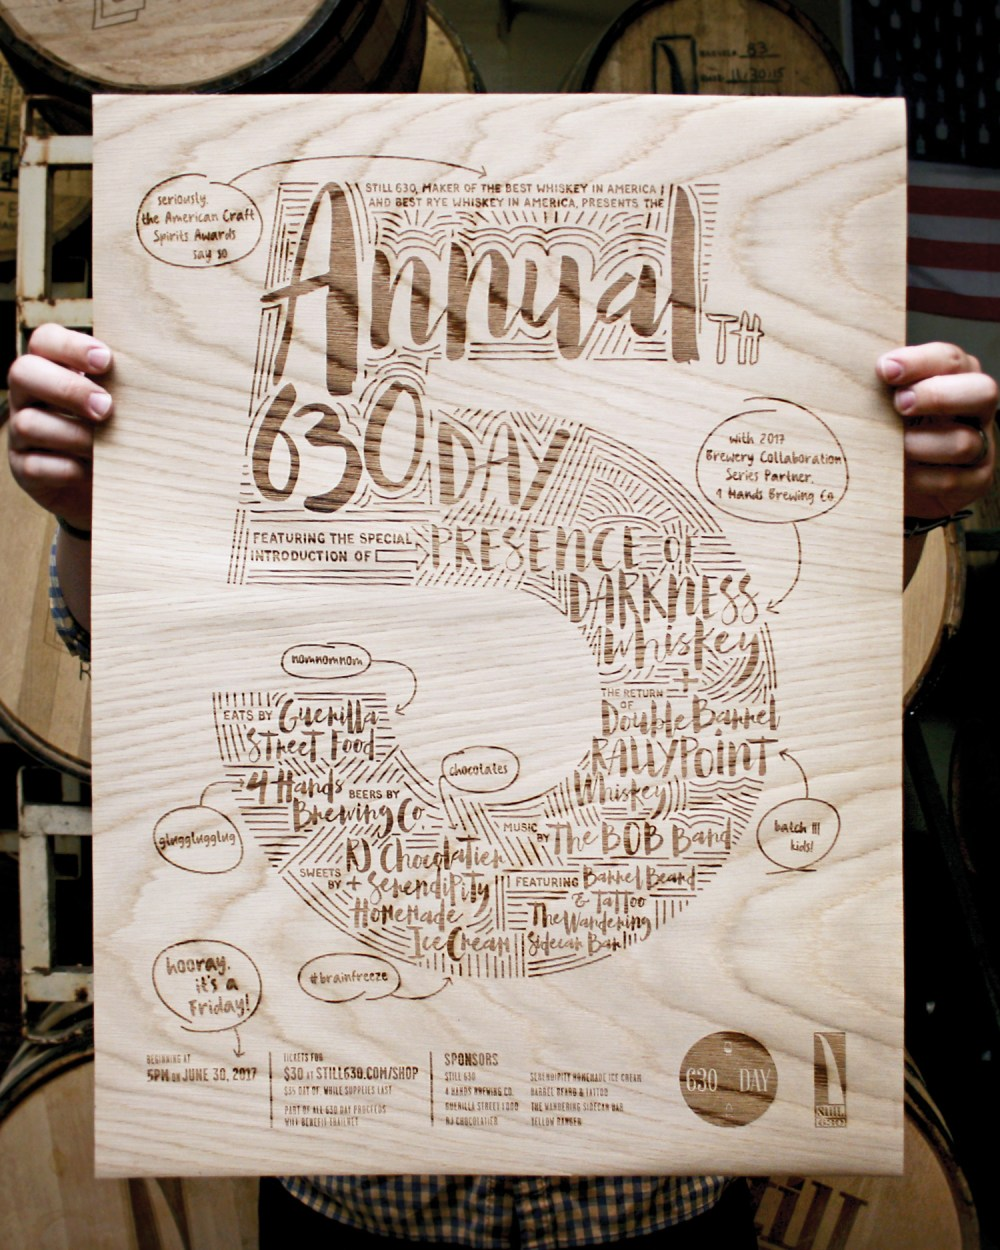 5th Annual 630 Day Poster